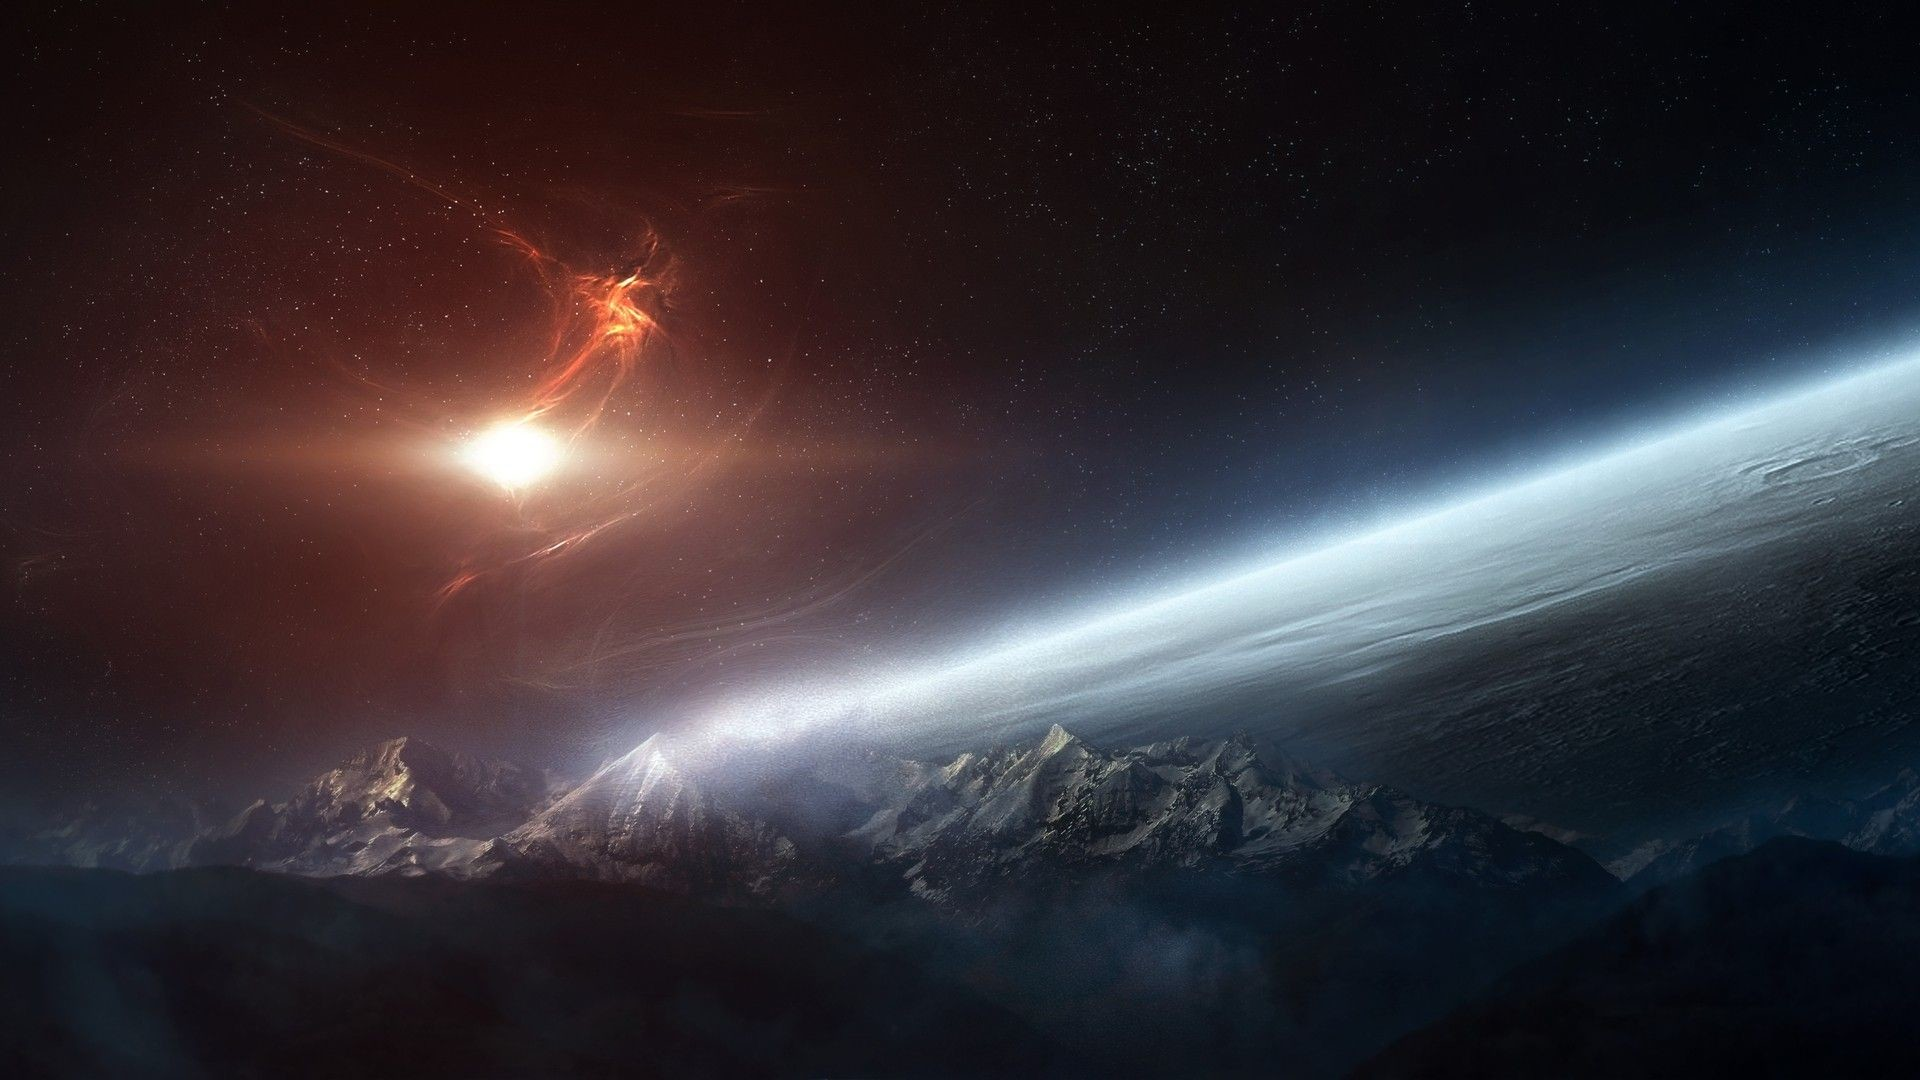 1920x1080 Outer Space HD Wallpaper » FullHDWpp - Full HD Wallpapers